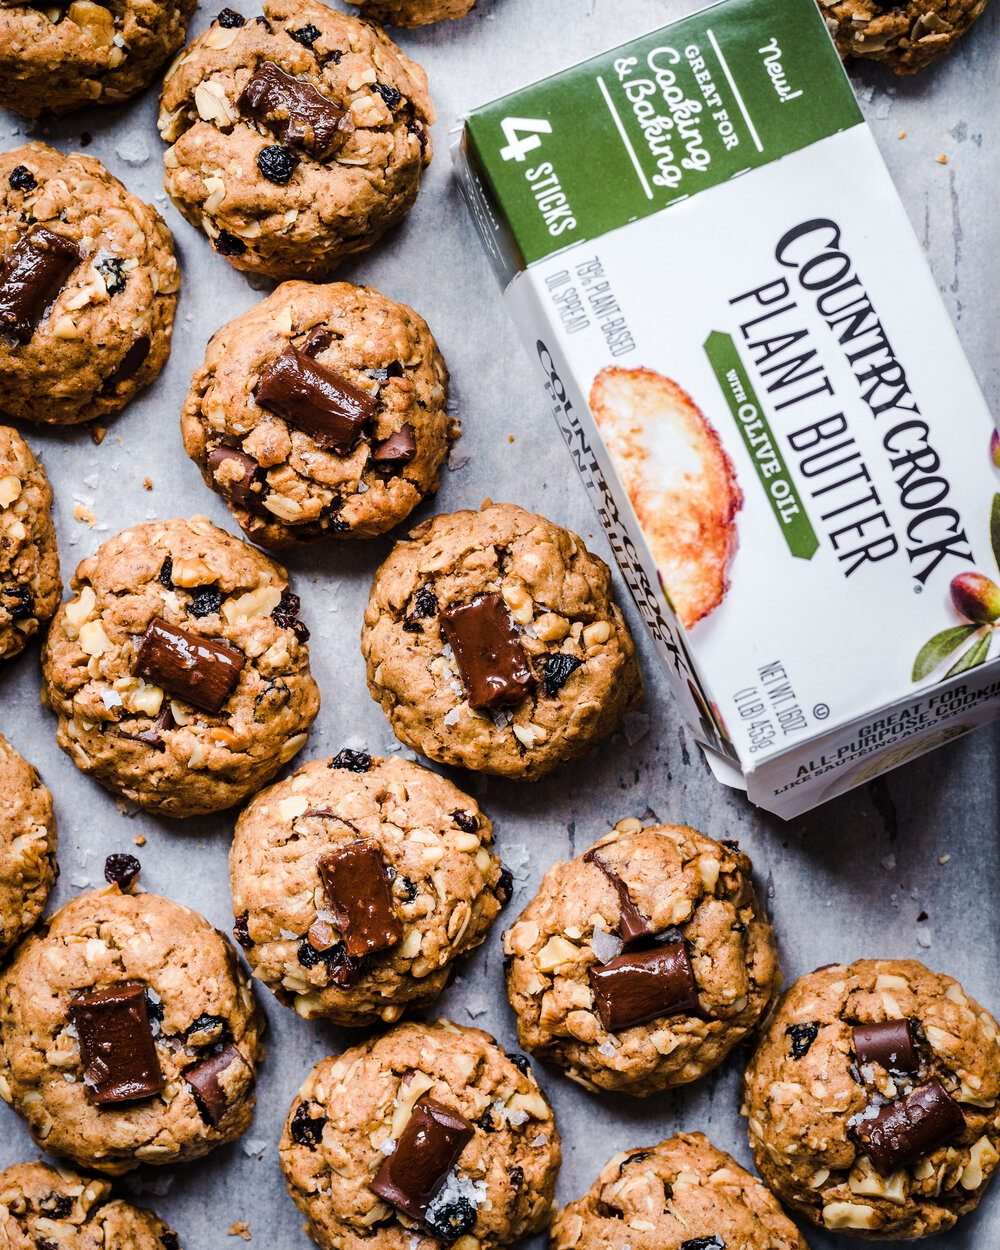 The Vegan Everything Cookie